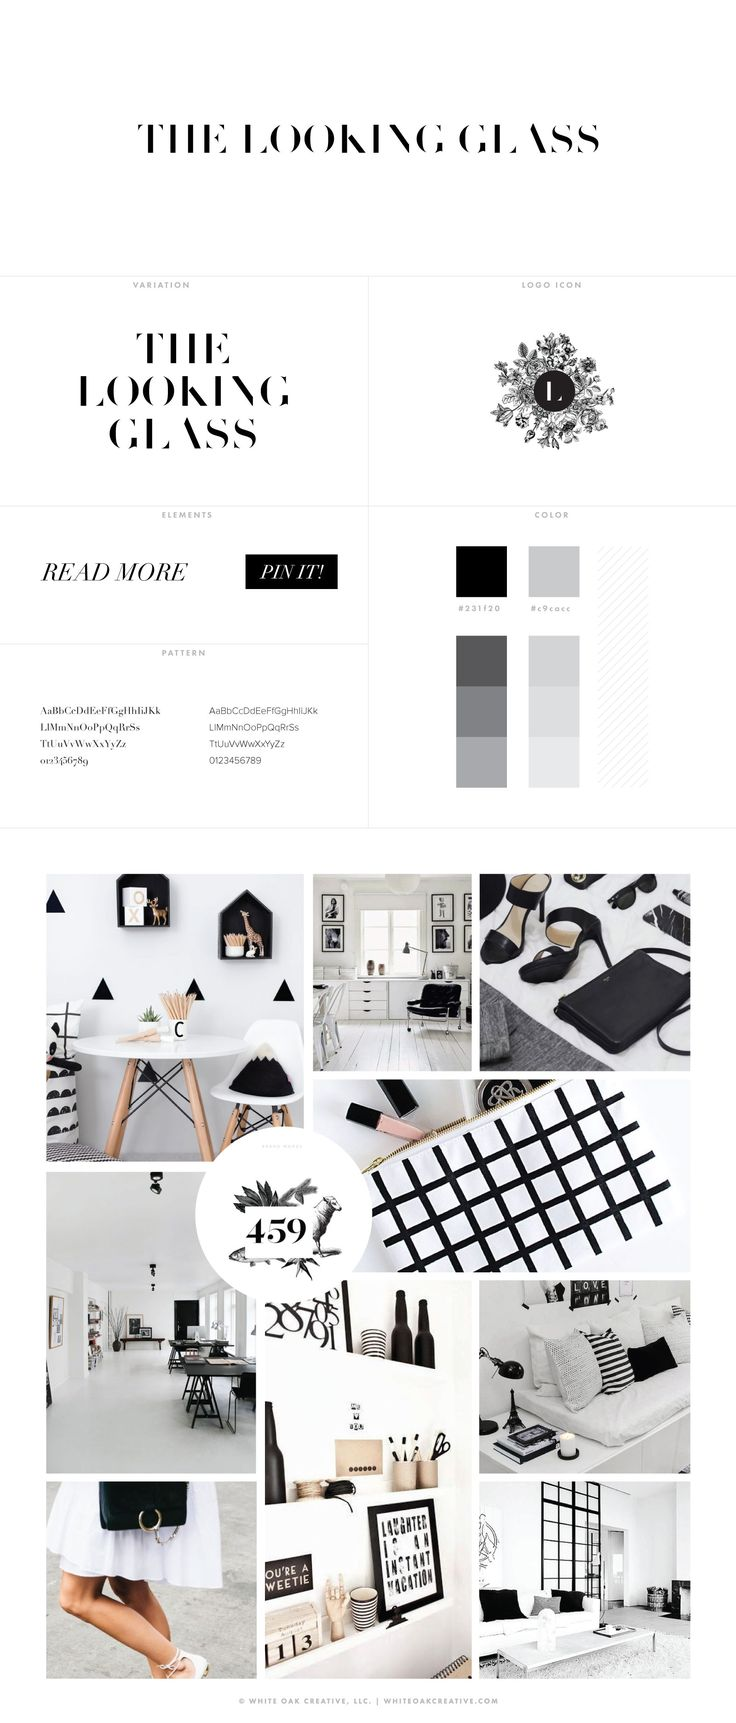 309 best Branding (Footprint) images on Pinterest | Brand design ...